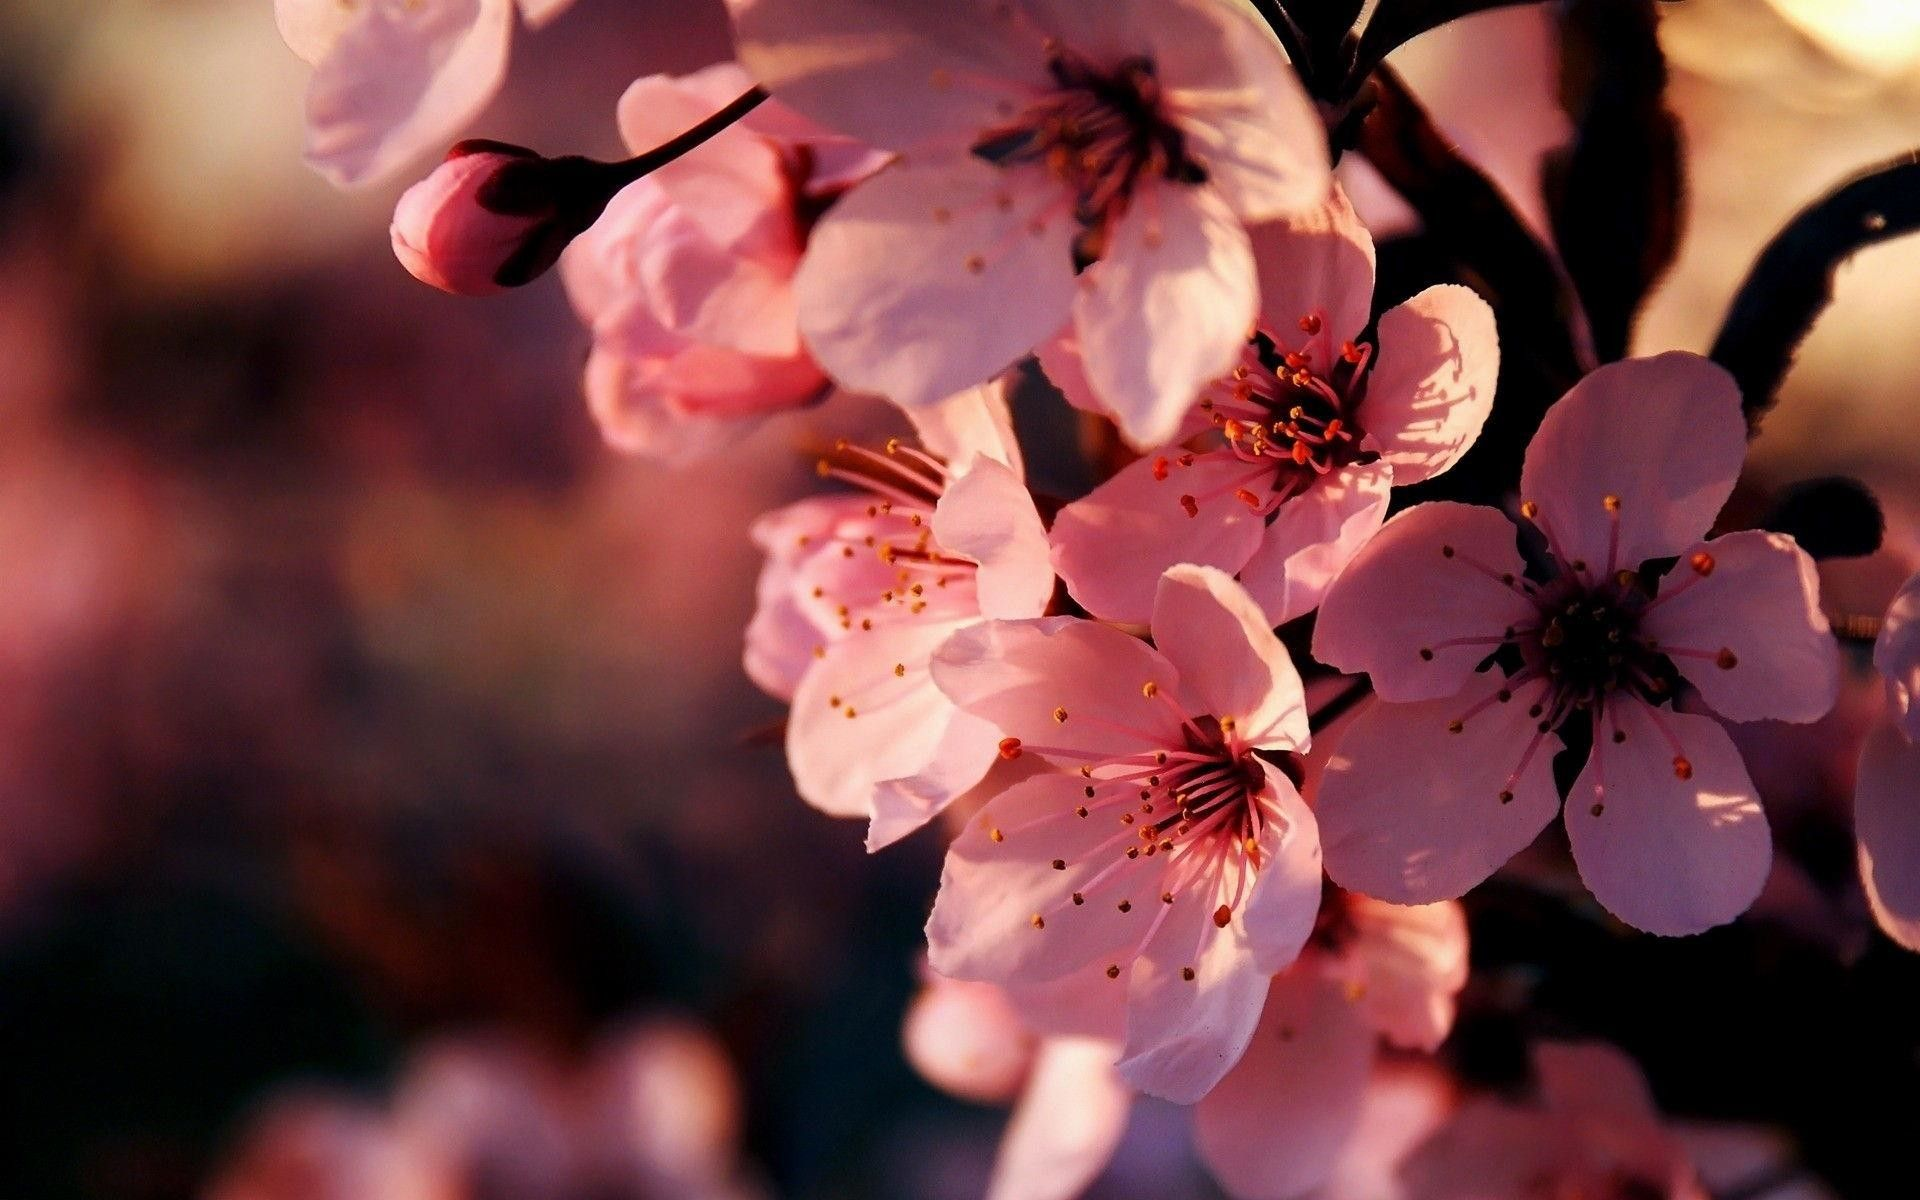 Flowers Hd Images